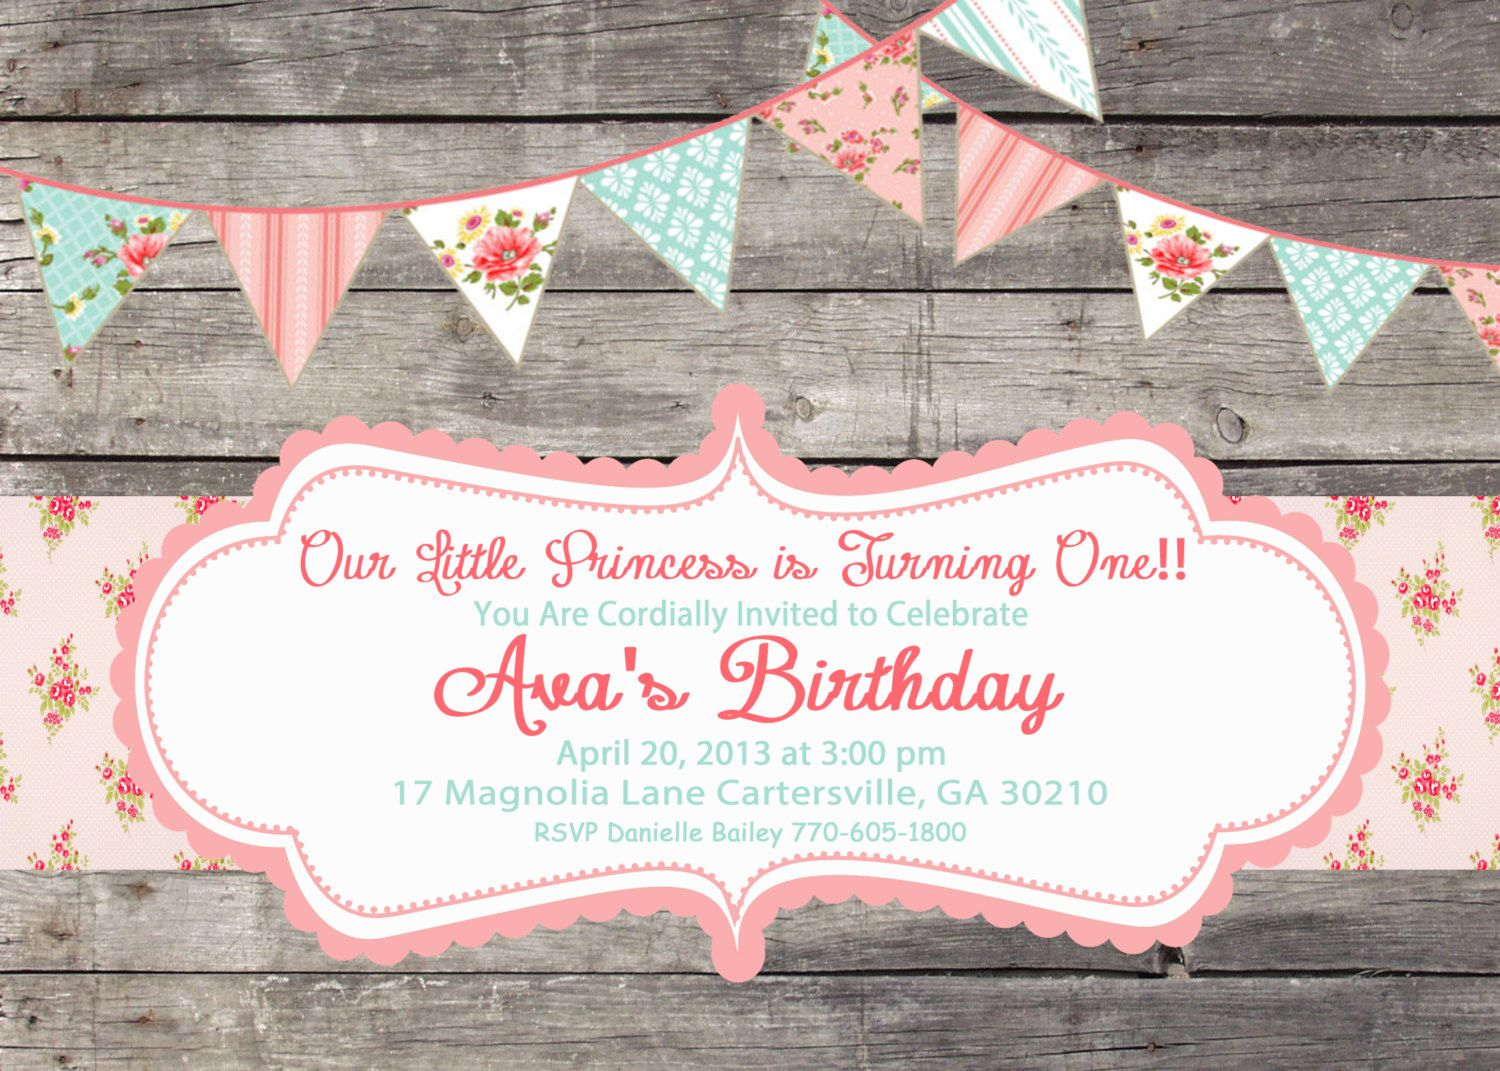 Shabby chic girls birthday party bridal or by prettiestlilthings shabby chic girls birthday party bridal or by prettiestlilthings 1500 filmwisefo